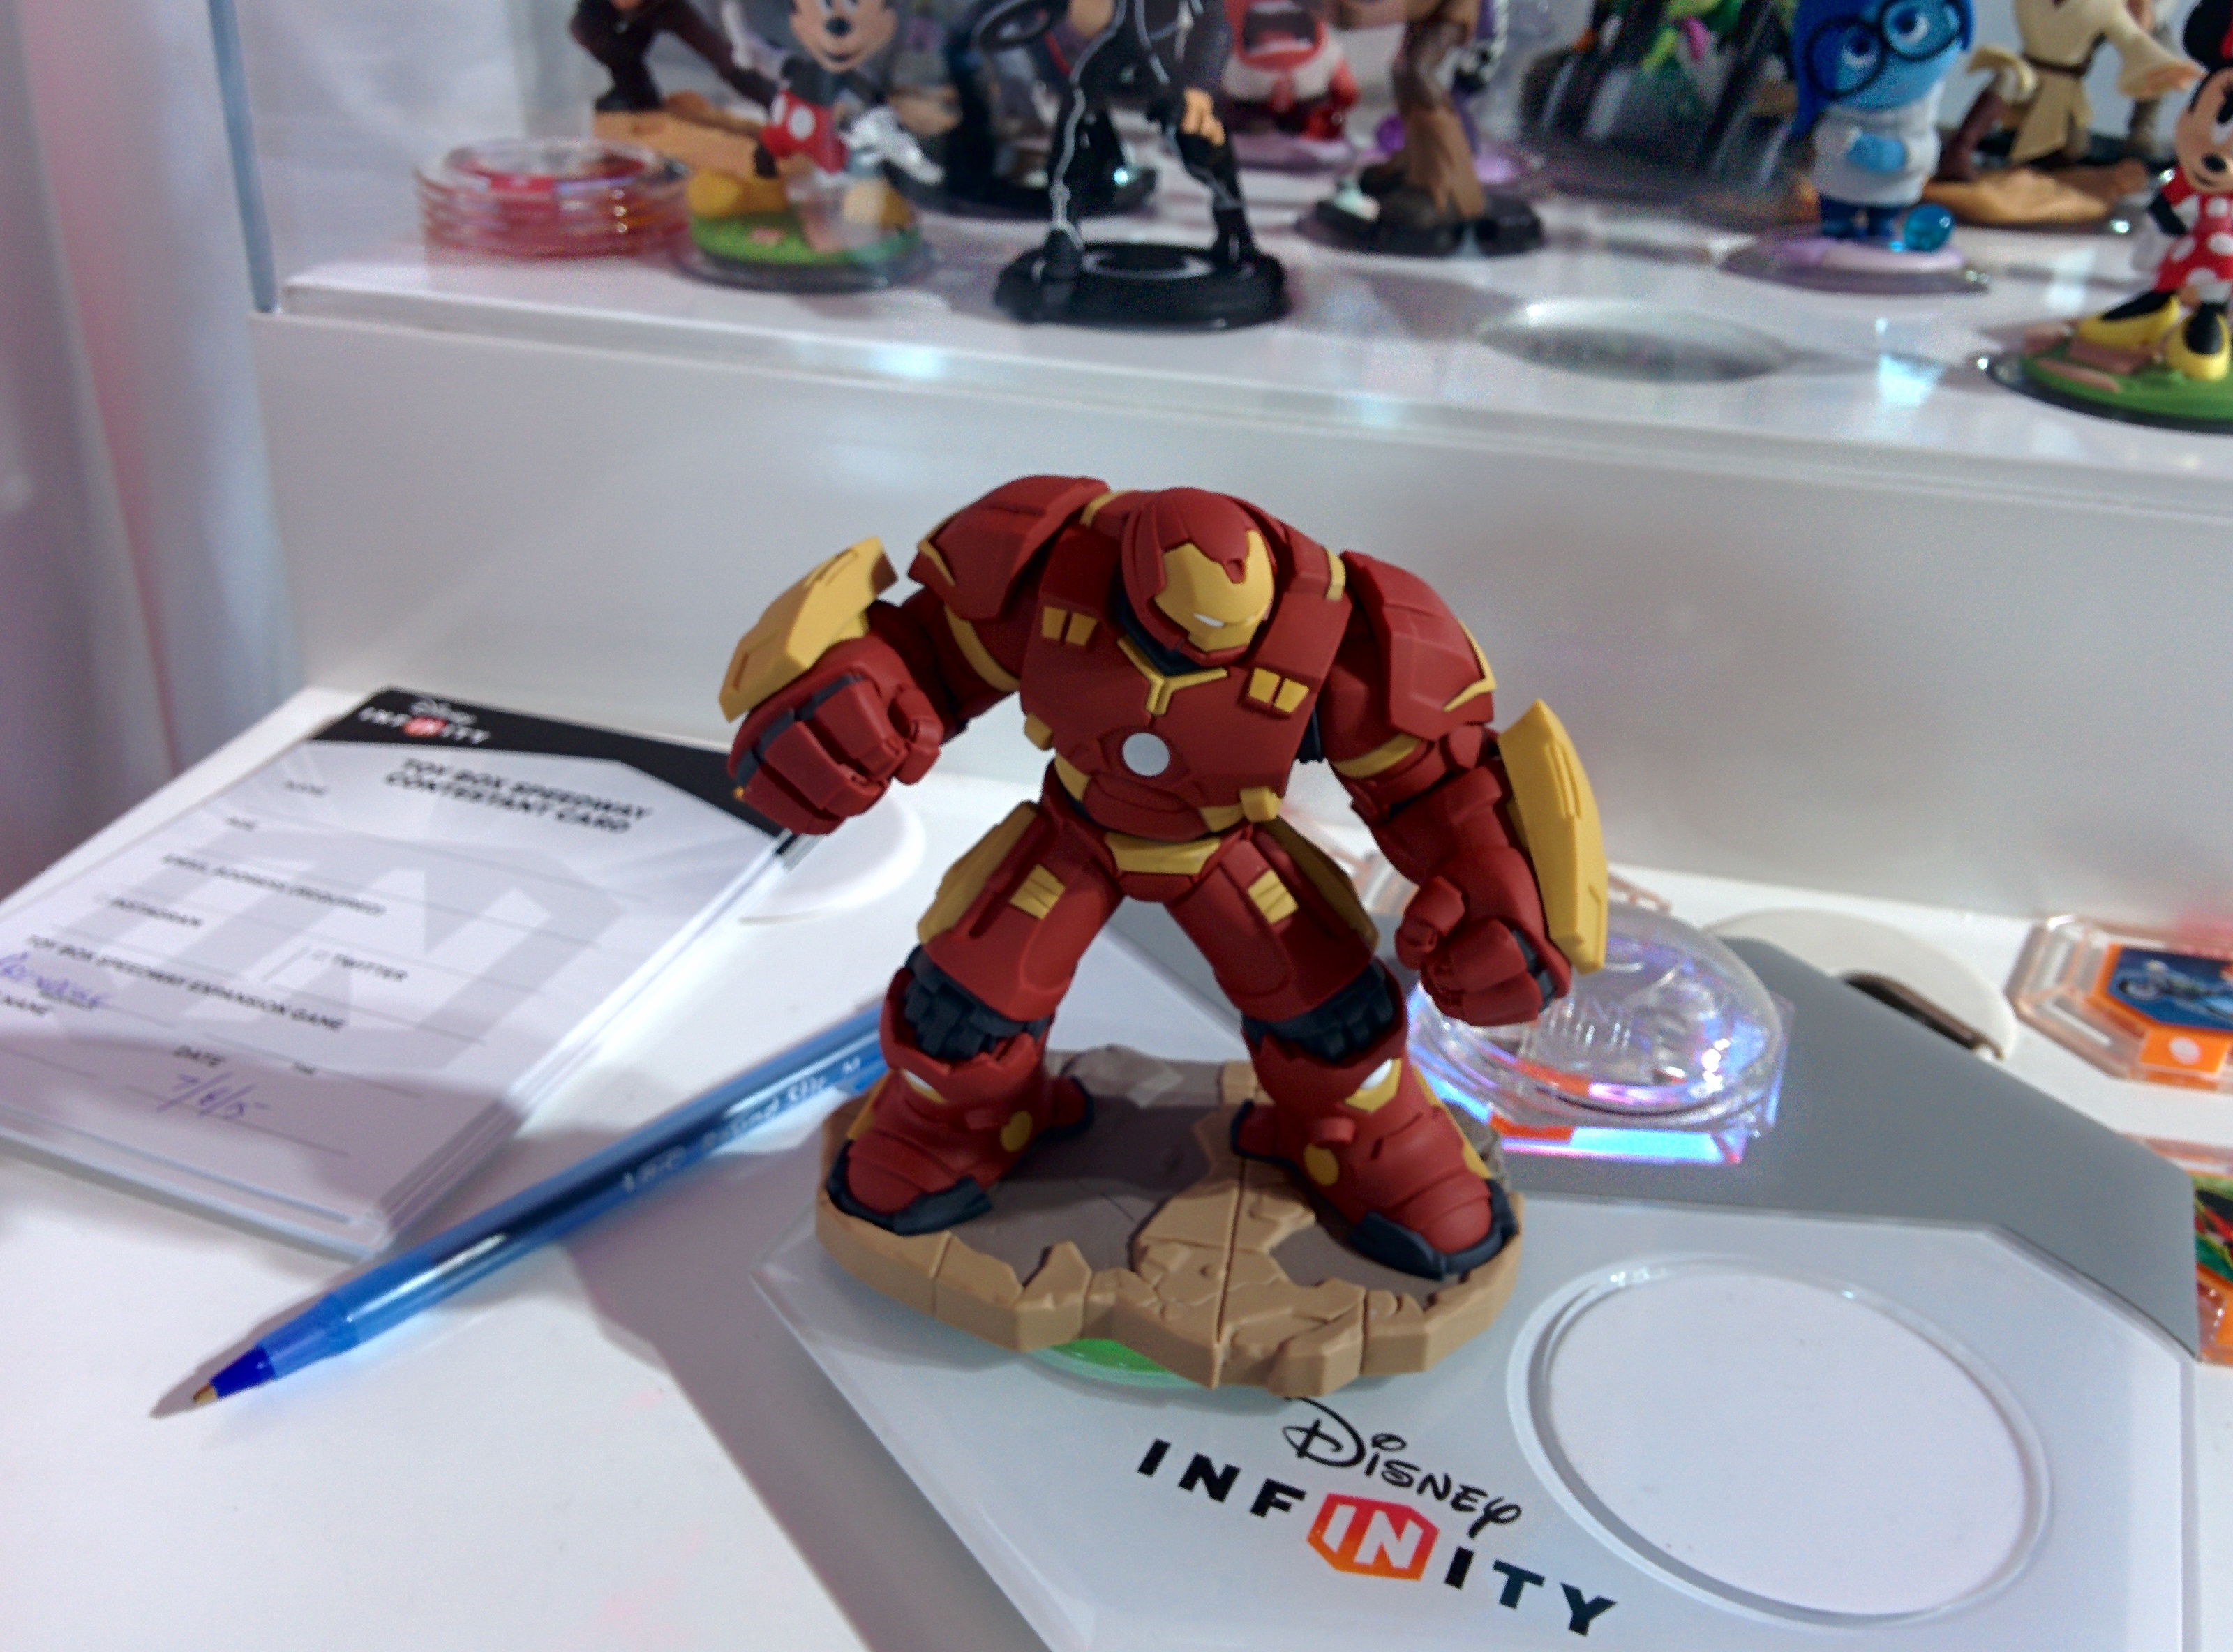 sdcc 2015: hitting the toy box speedway with disney infinity 3.0